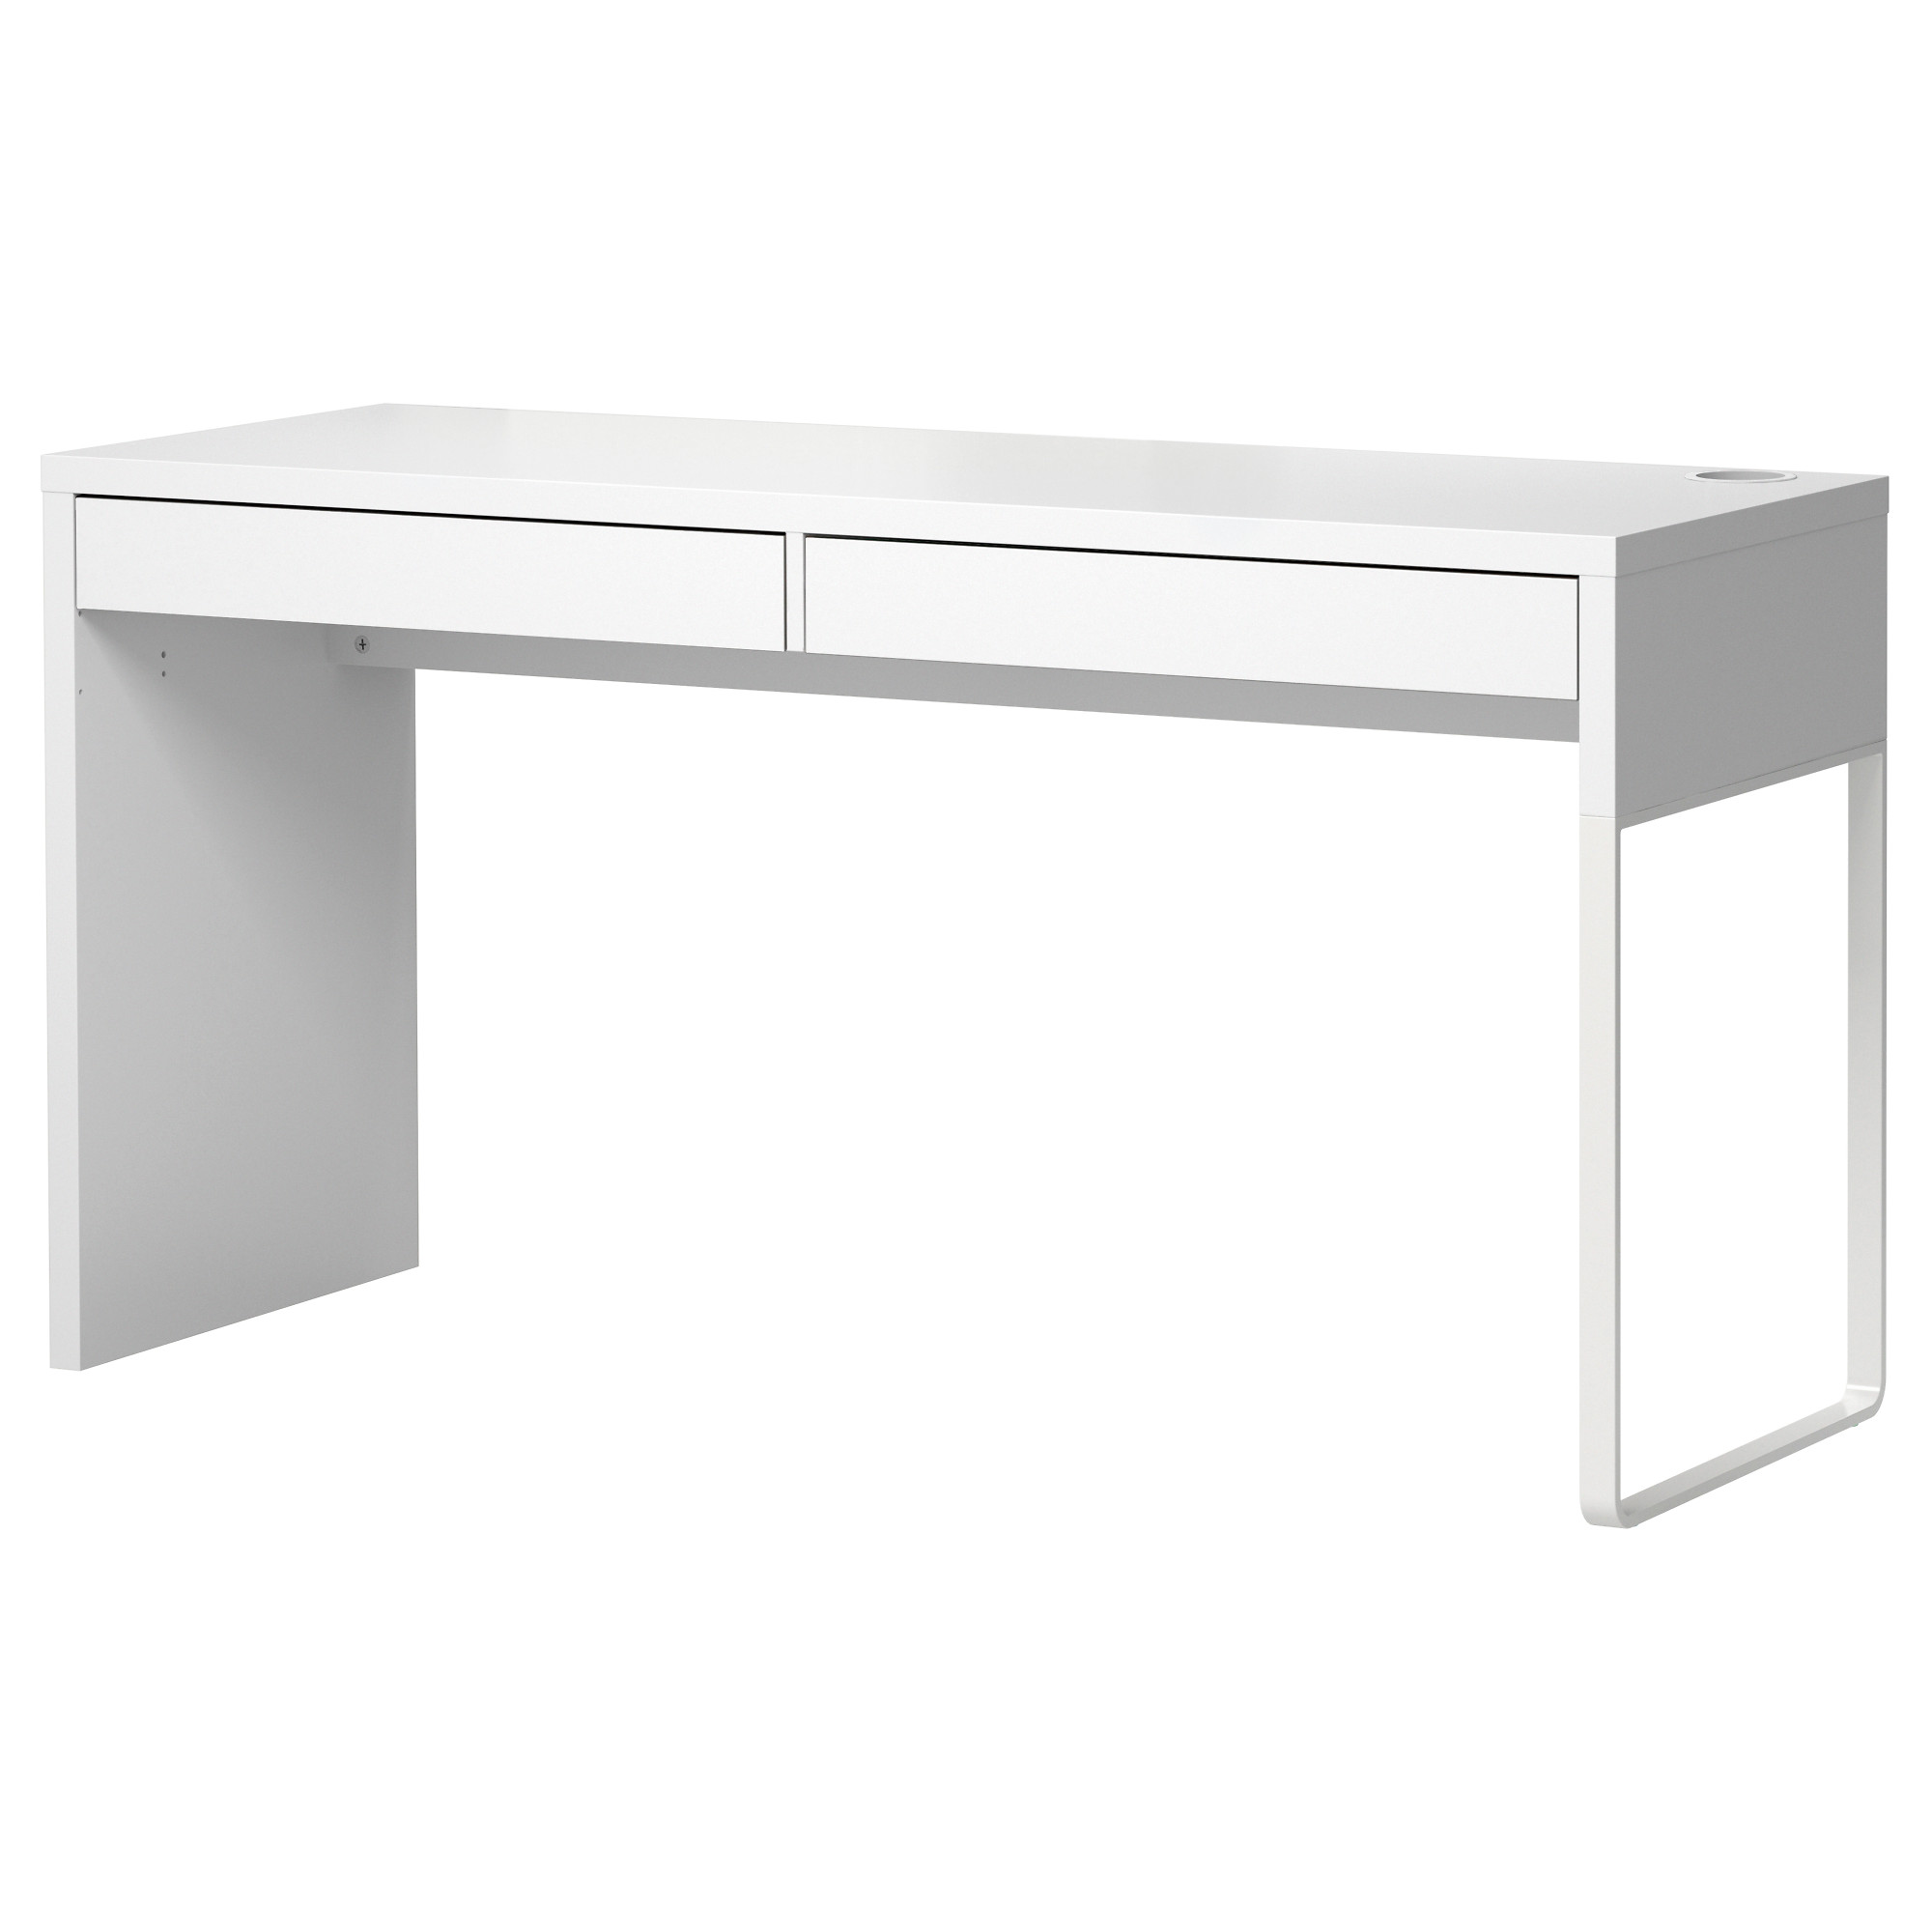 IKEA computer desk also add slim corner computer desk also add computer desk workstation furniture also add affordable writing desk